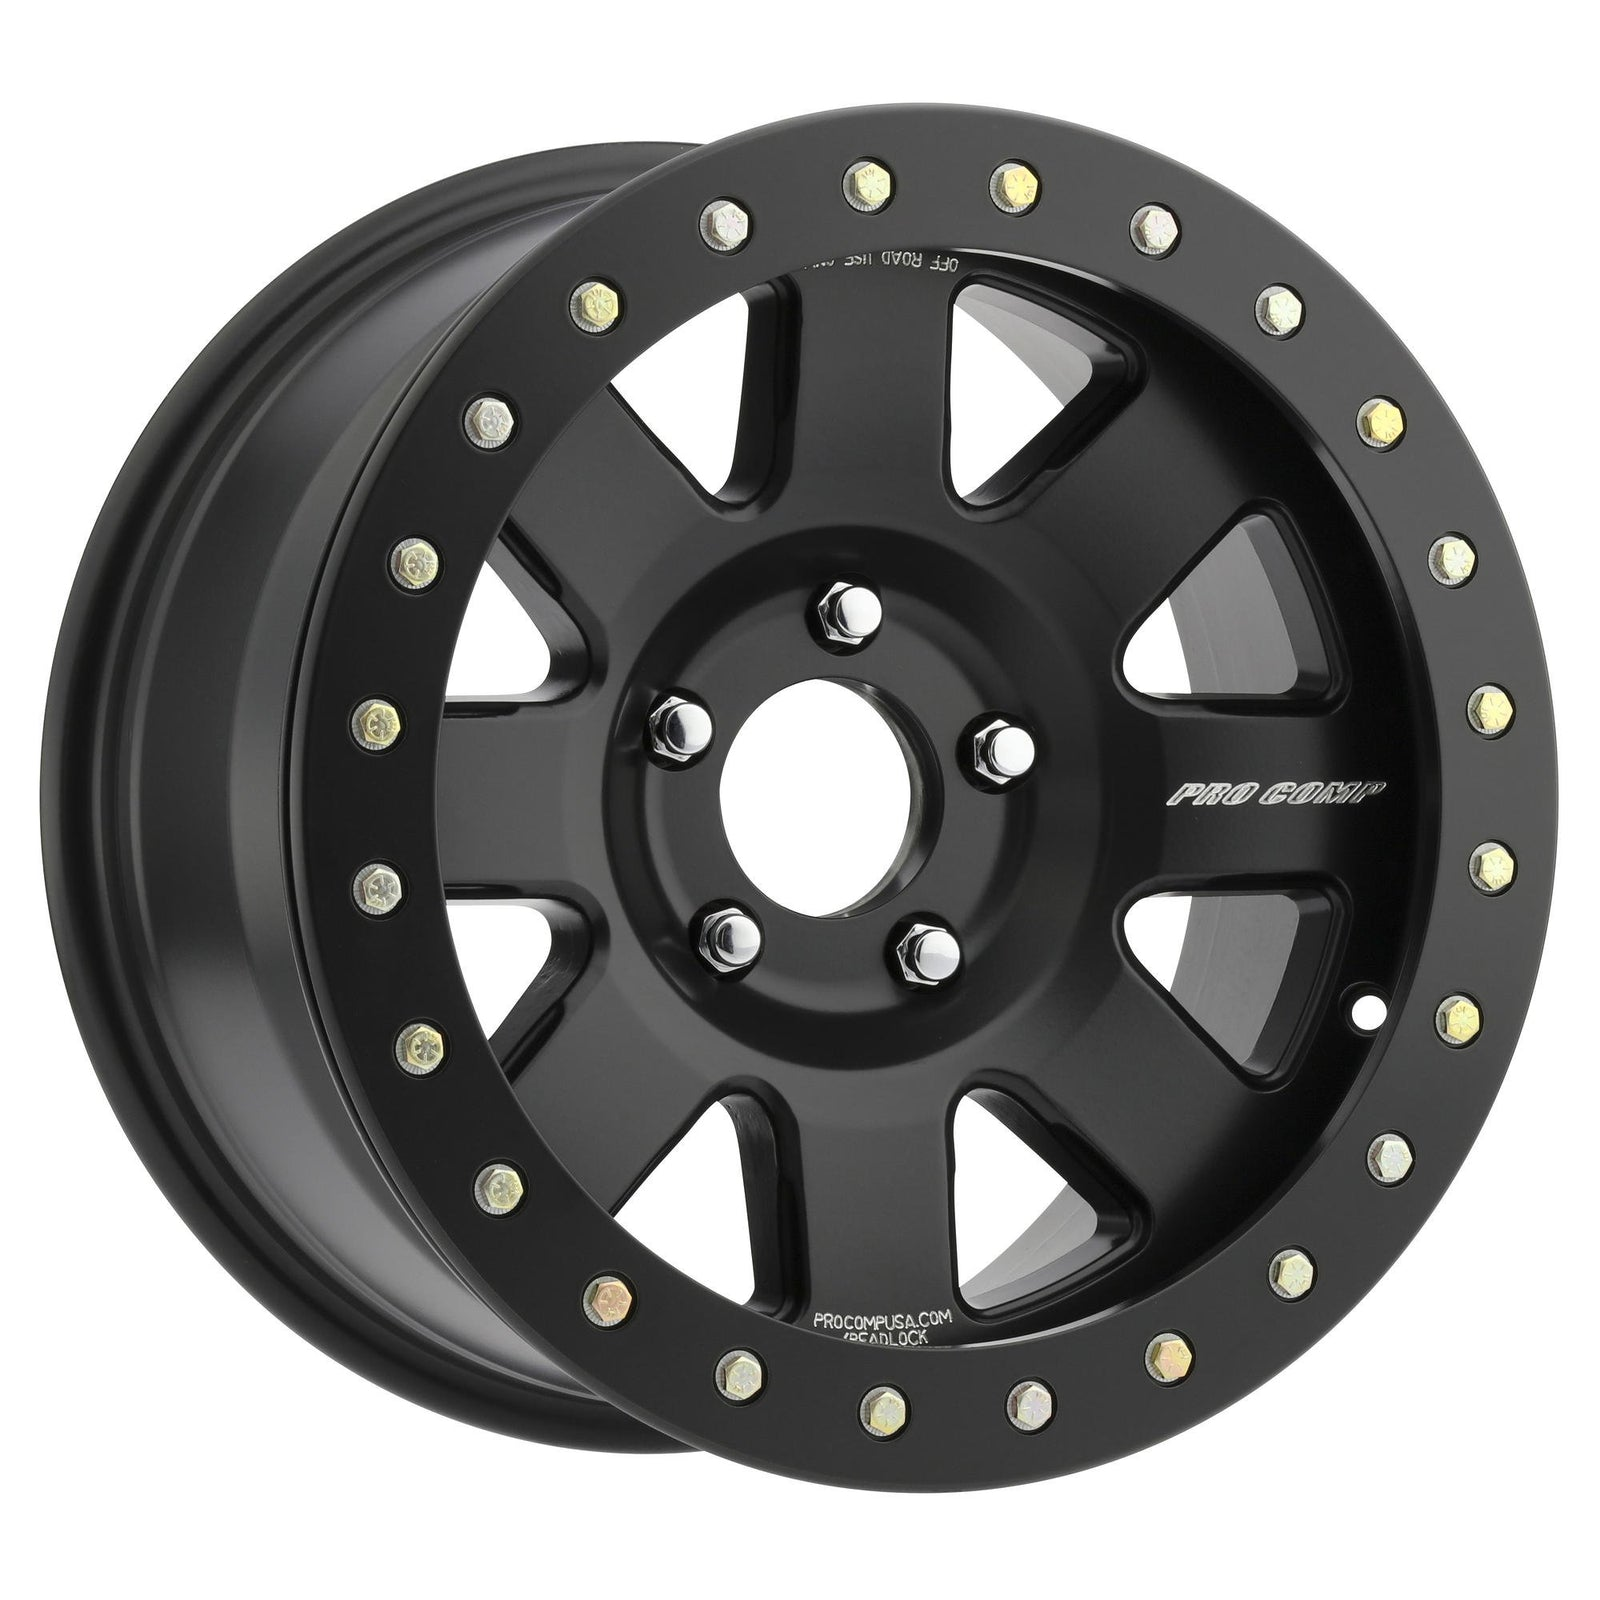 Pro Comp 75 Series Trilogy Race, 17x9 with 5x4.5 Bolt Pattern - Satin Black - 5175-796537